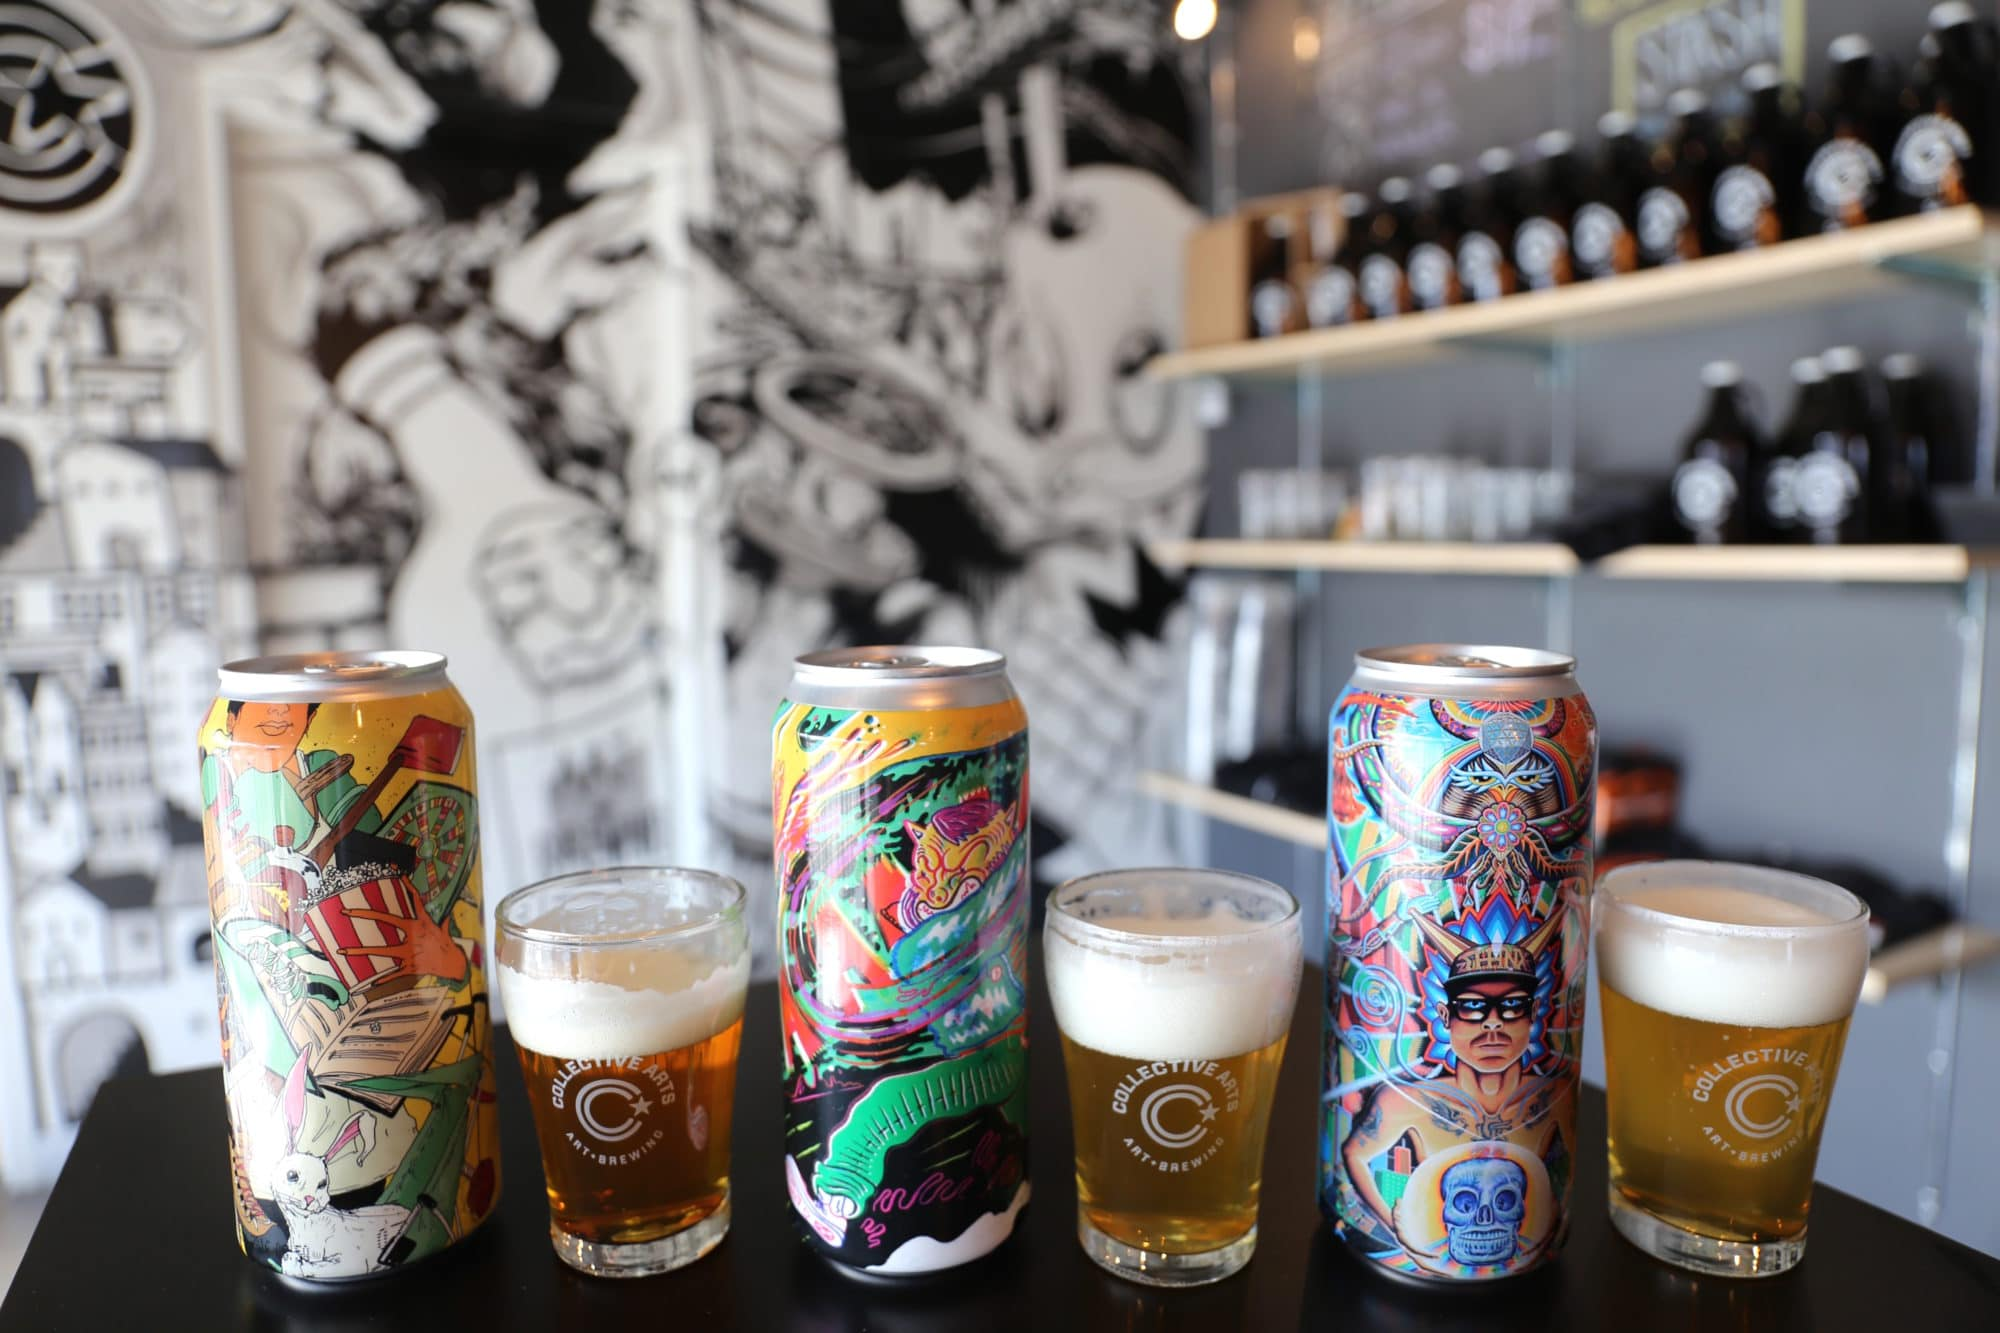 Collective Arts is a popular Hamilton brewery known for its art adorned cans.